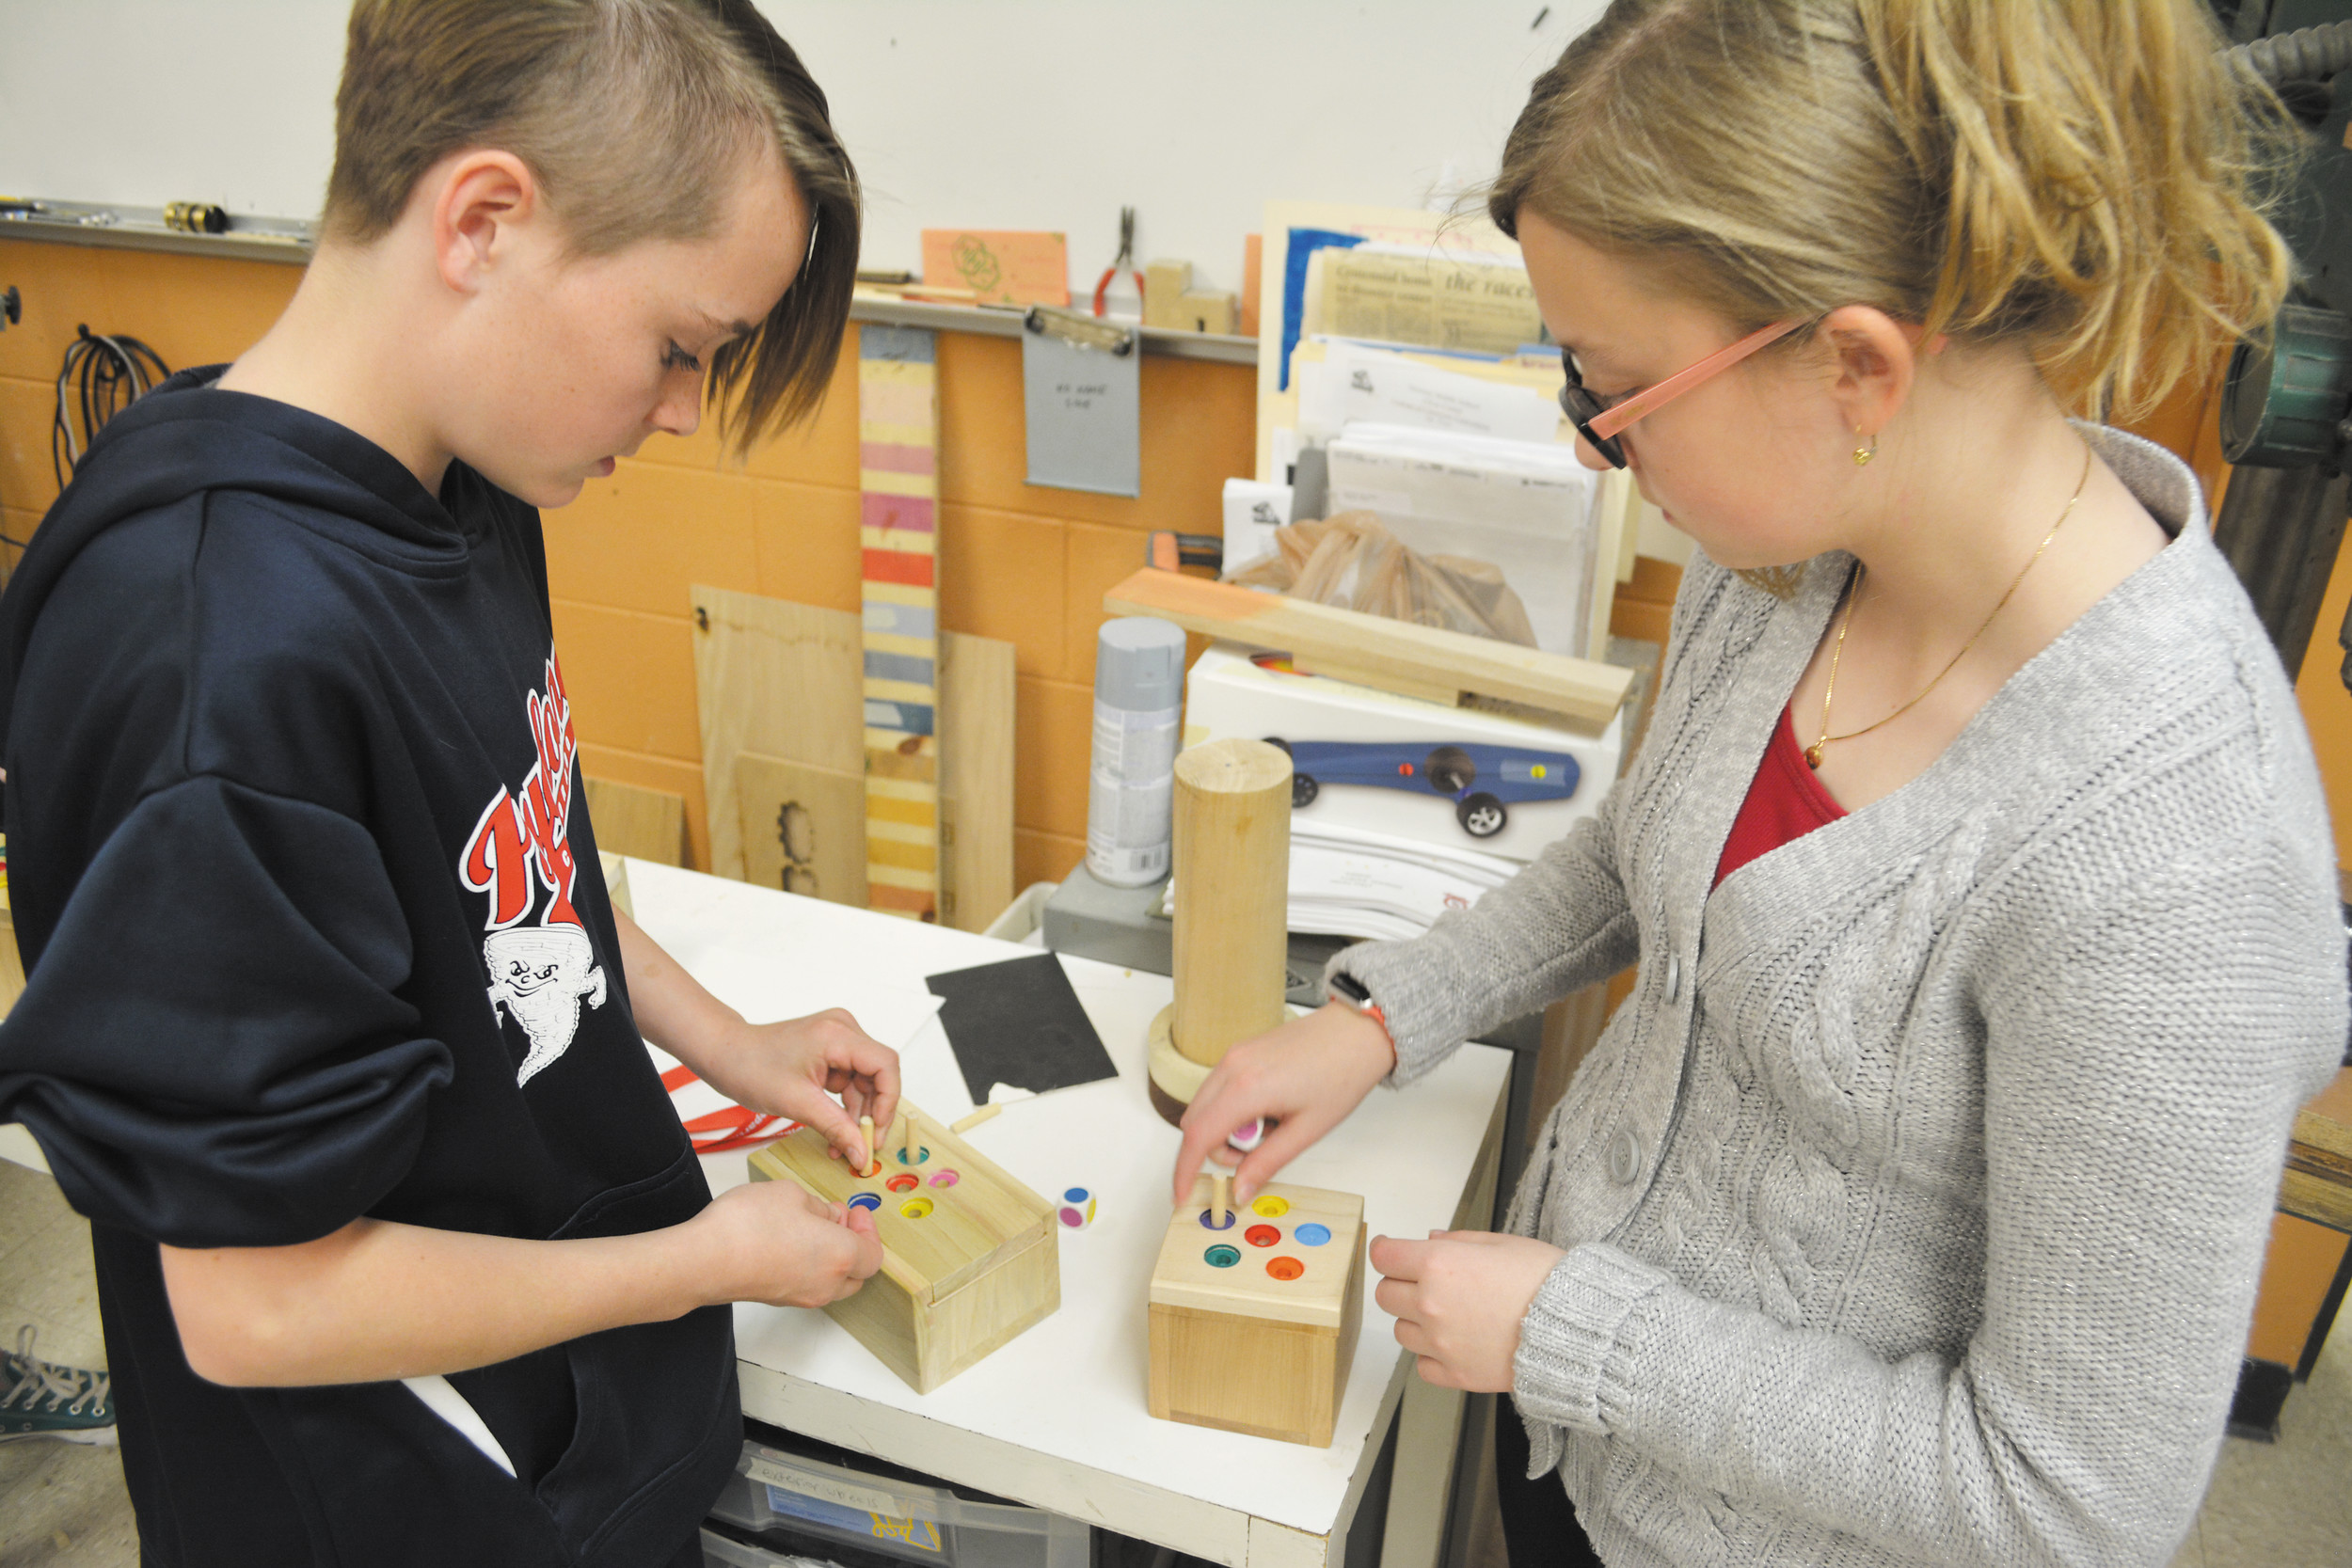 Colorado in job physical therapy - Lps Middle Schoolers Design Build Projects